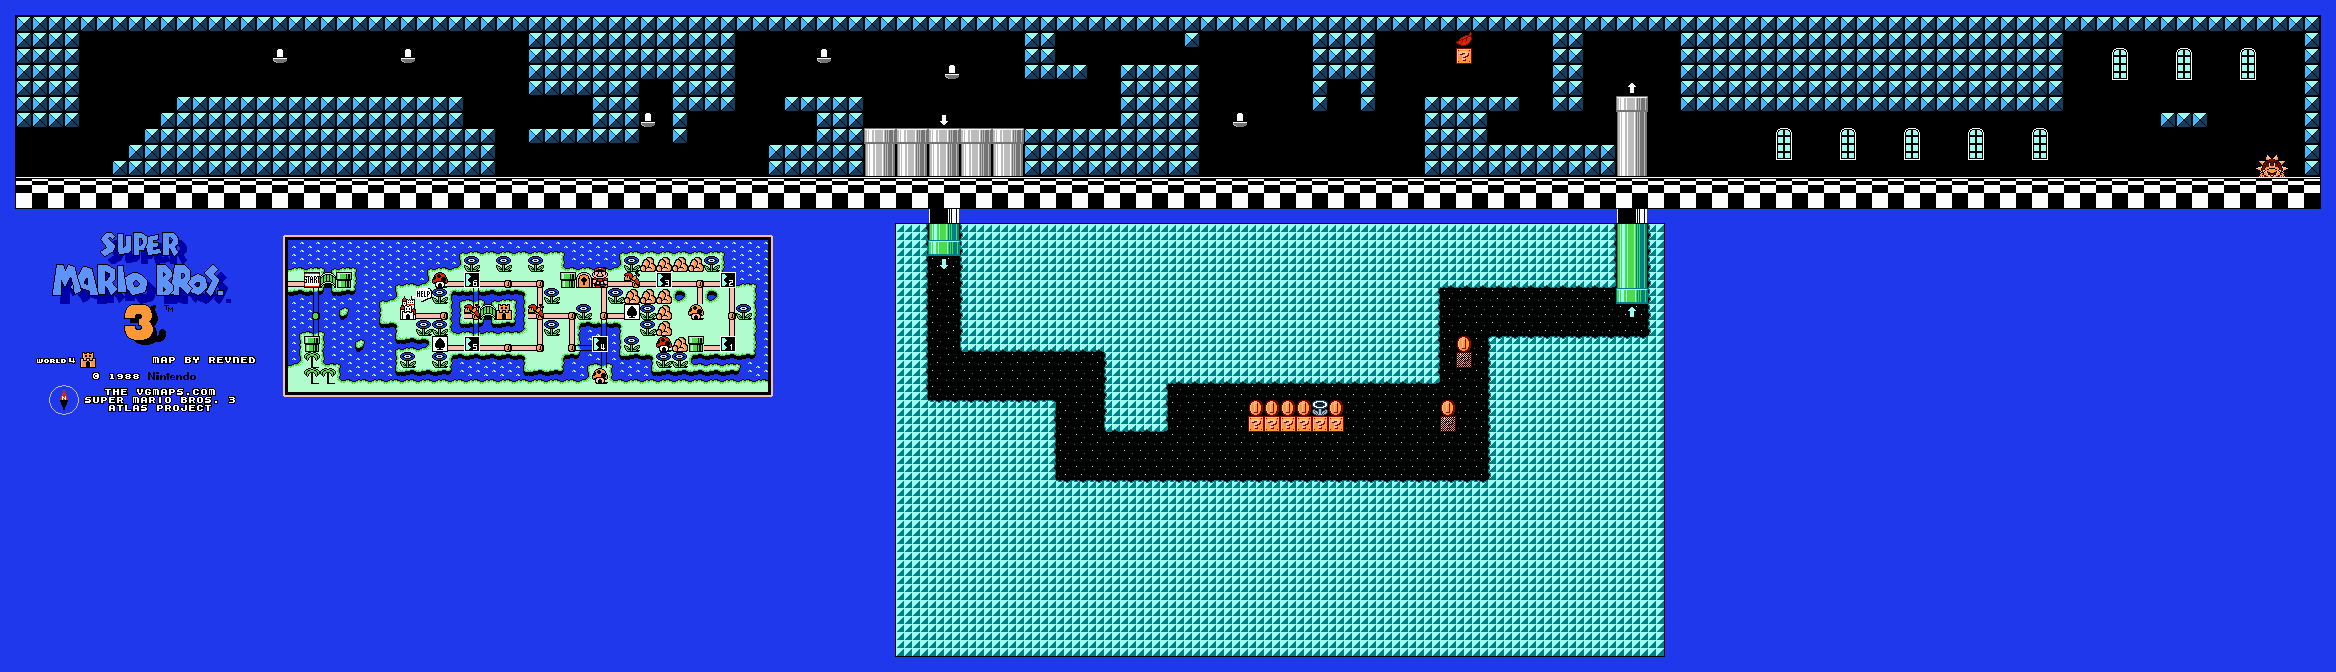 InstallerFree: Mario Bros Game Map